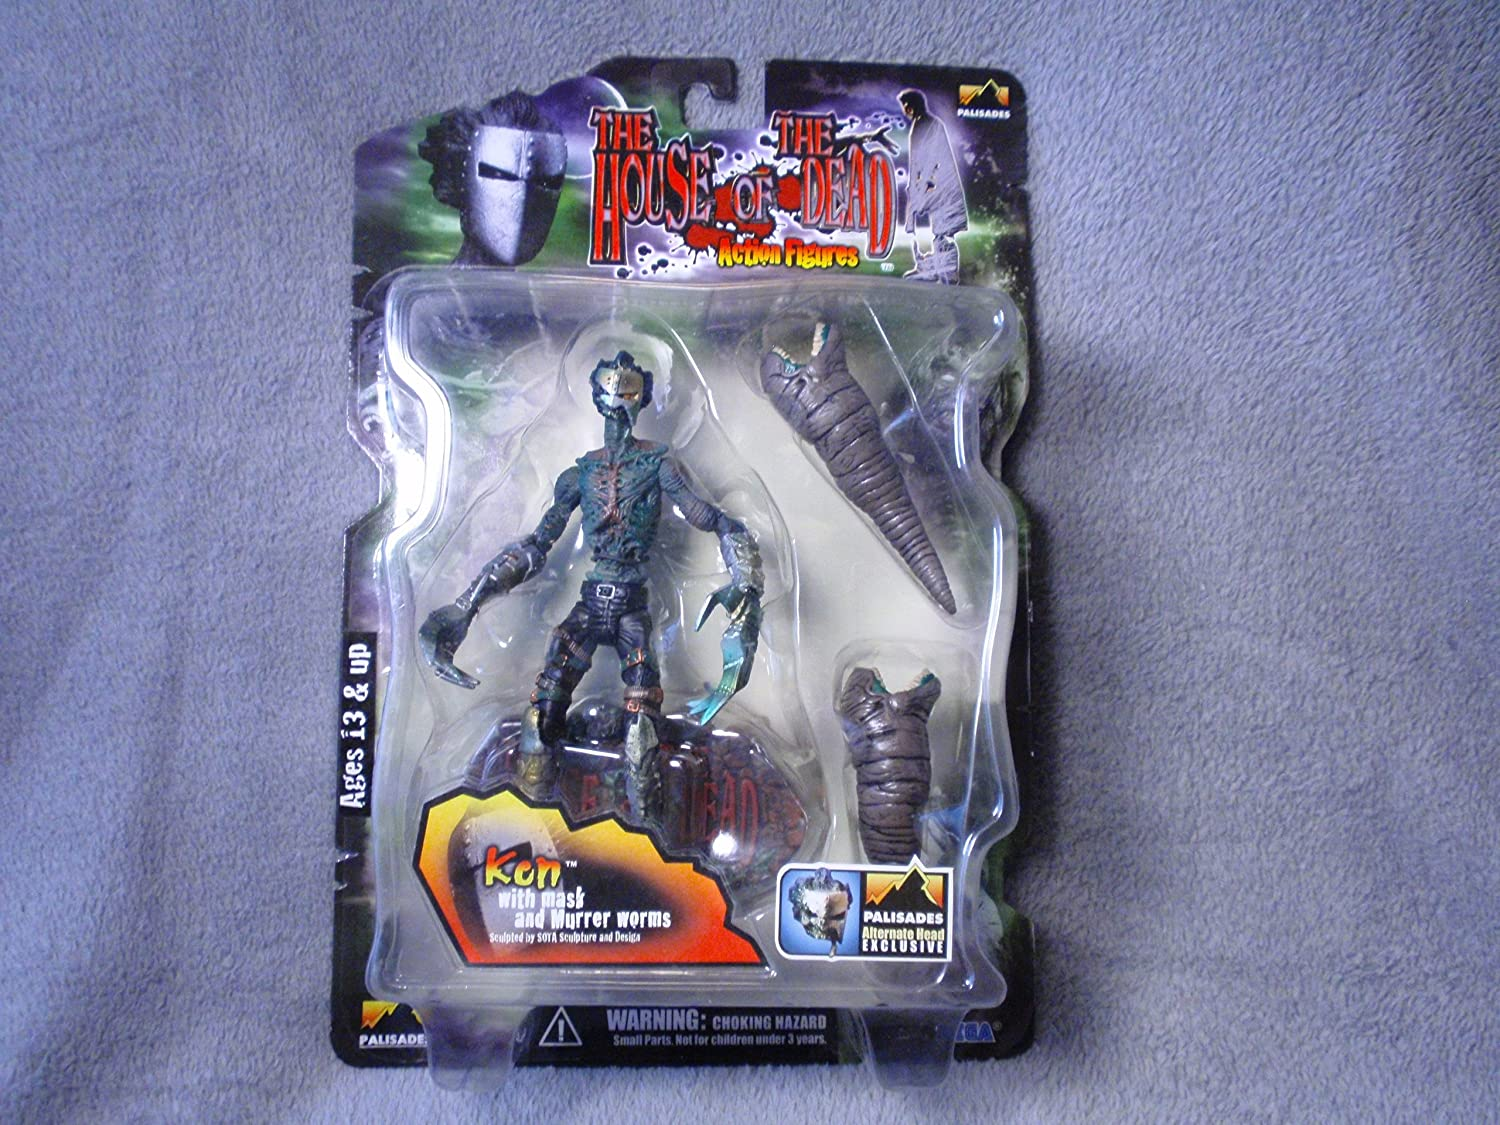 Sega The House Of Dead Ken With Mask And Murrer Worms Amazon De